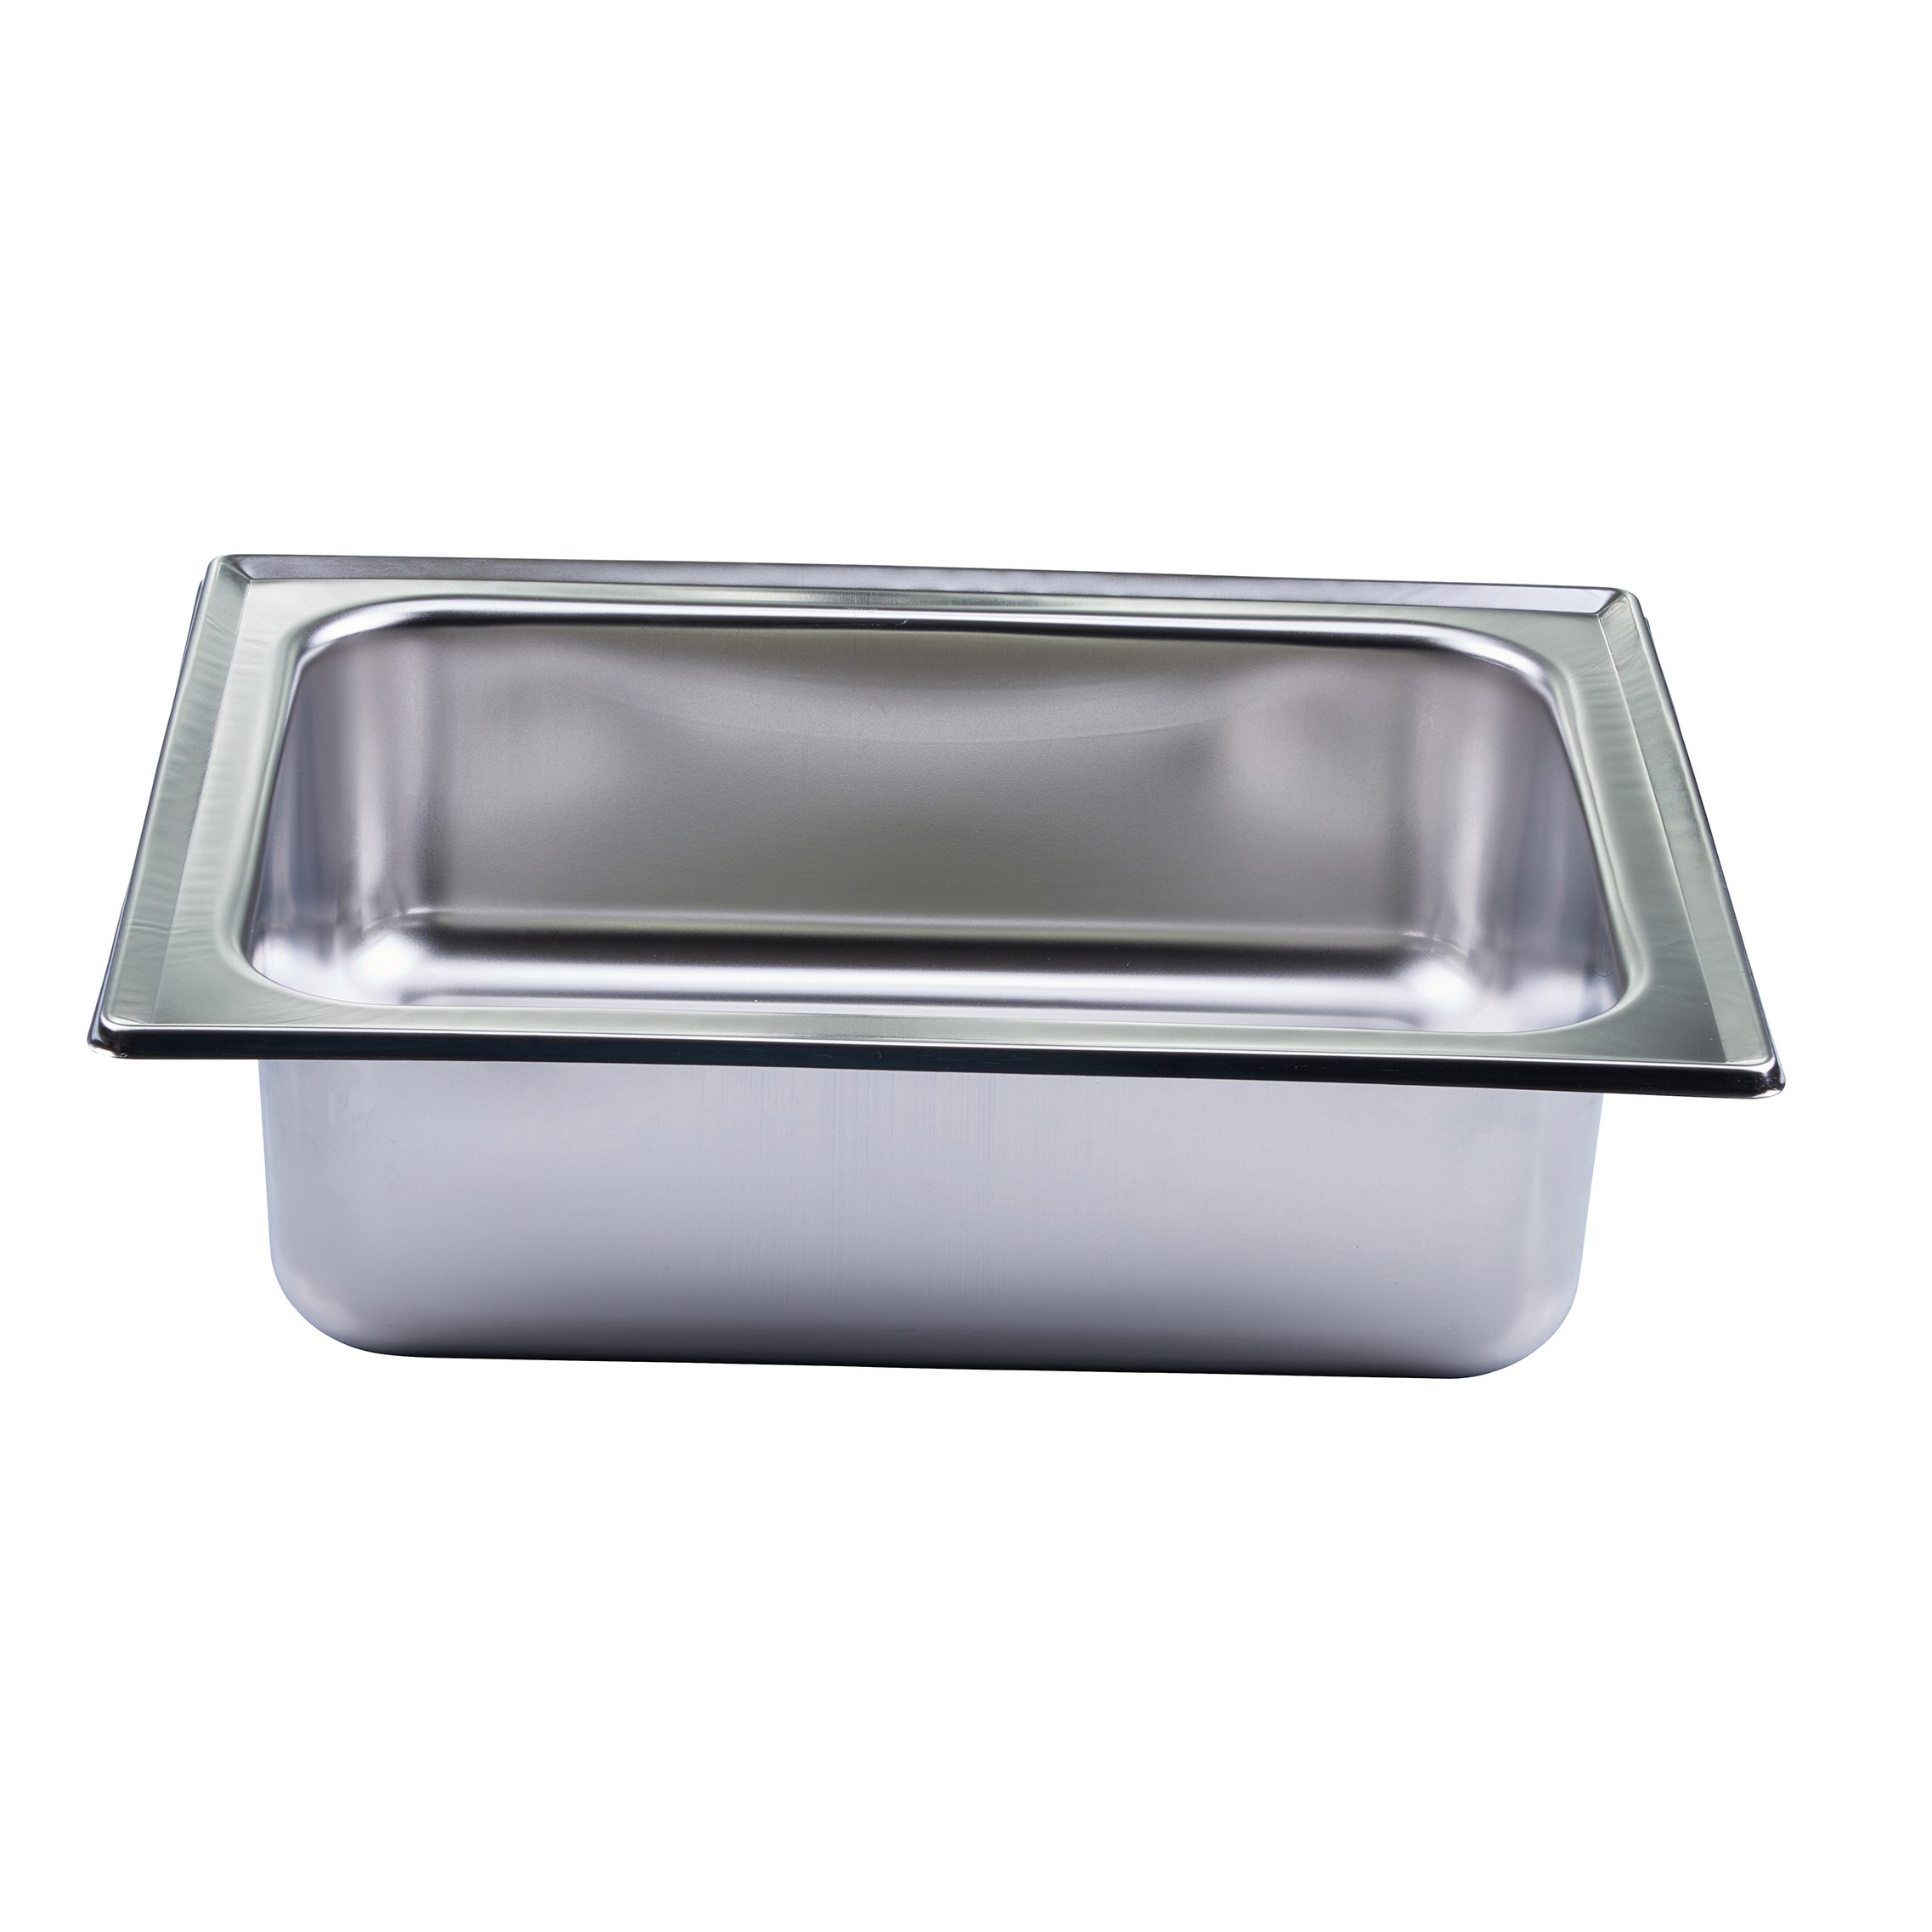 Winco 508-WP chafing dish pan